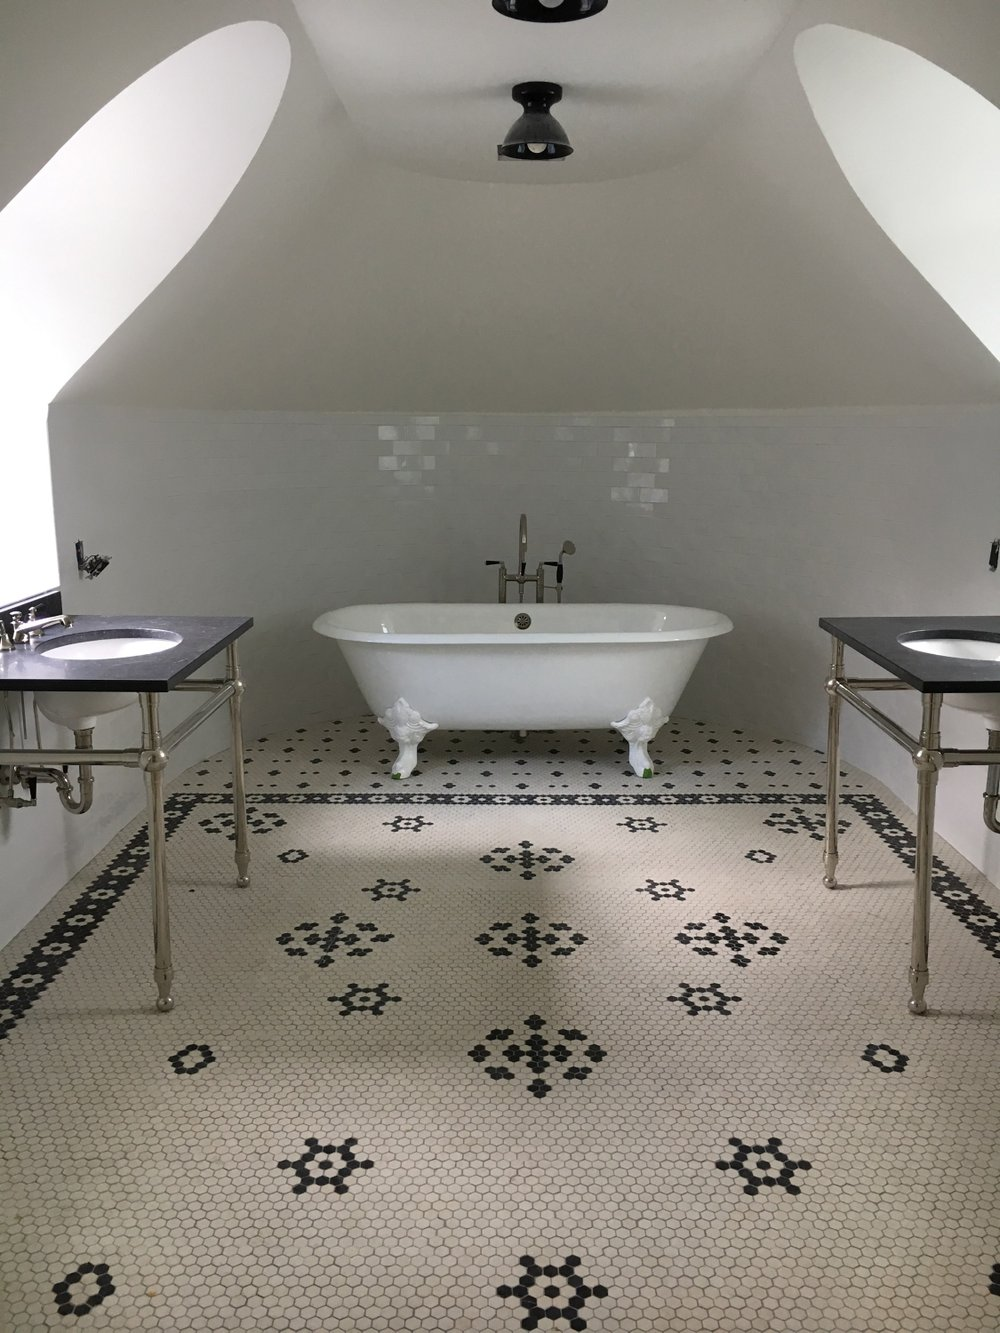 Blue and white mosaic tiles create different zones in this attic bath by Allison Tick. MUST CREDIT: Allison Tick